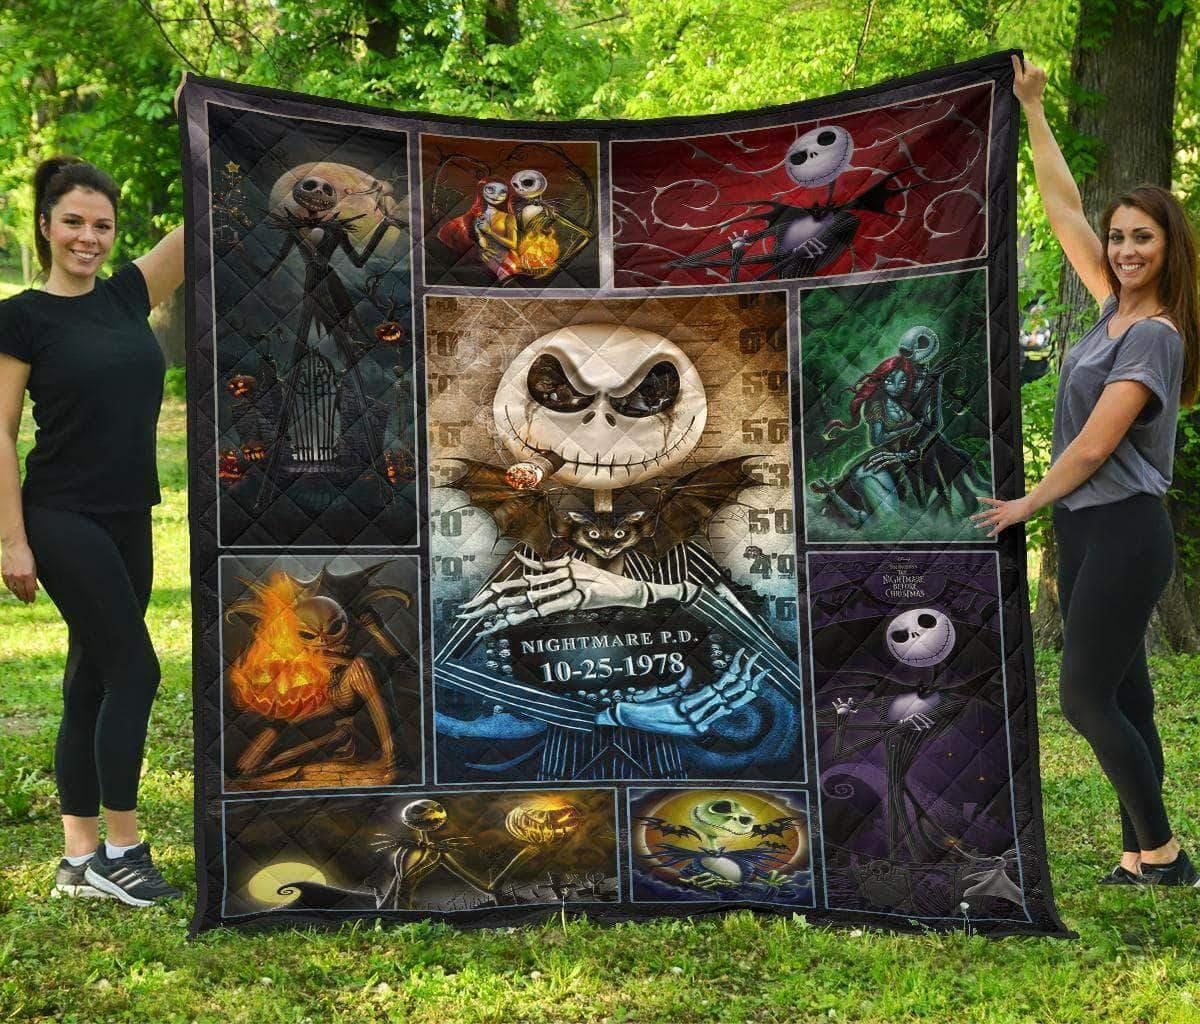 The nightmare before christmas jack skellington quilt - queen